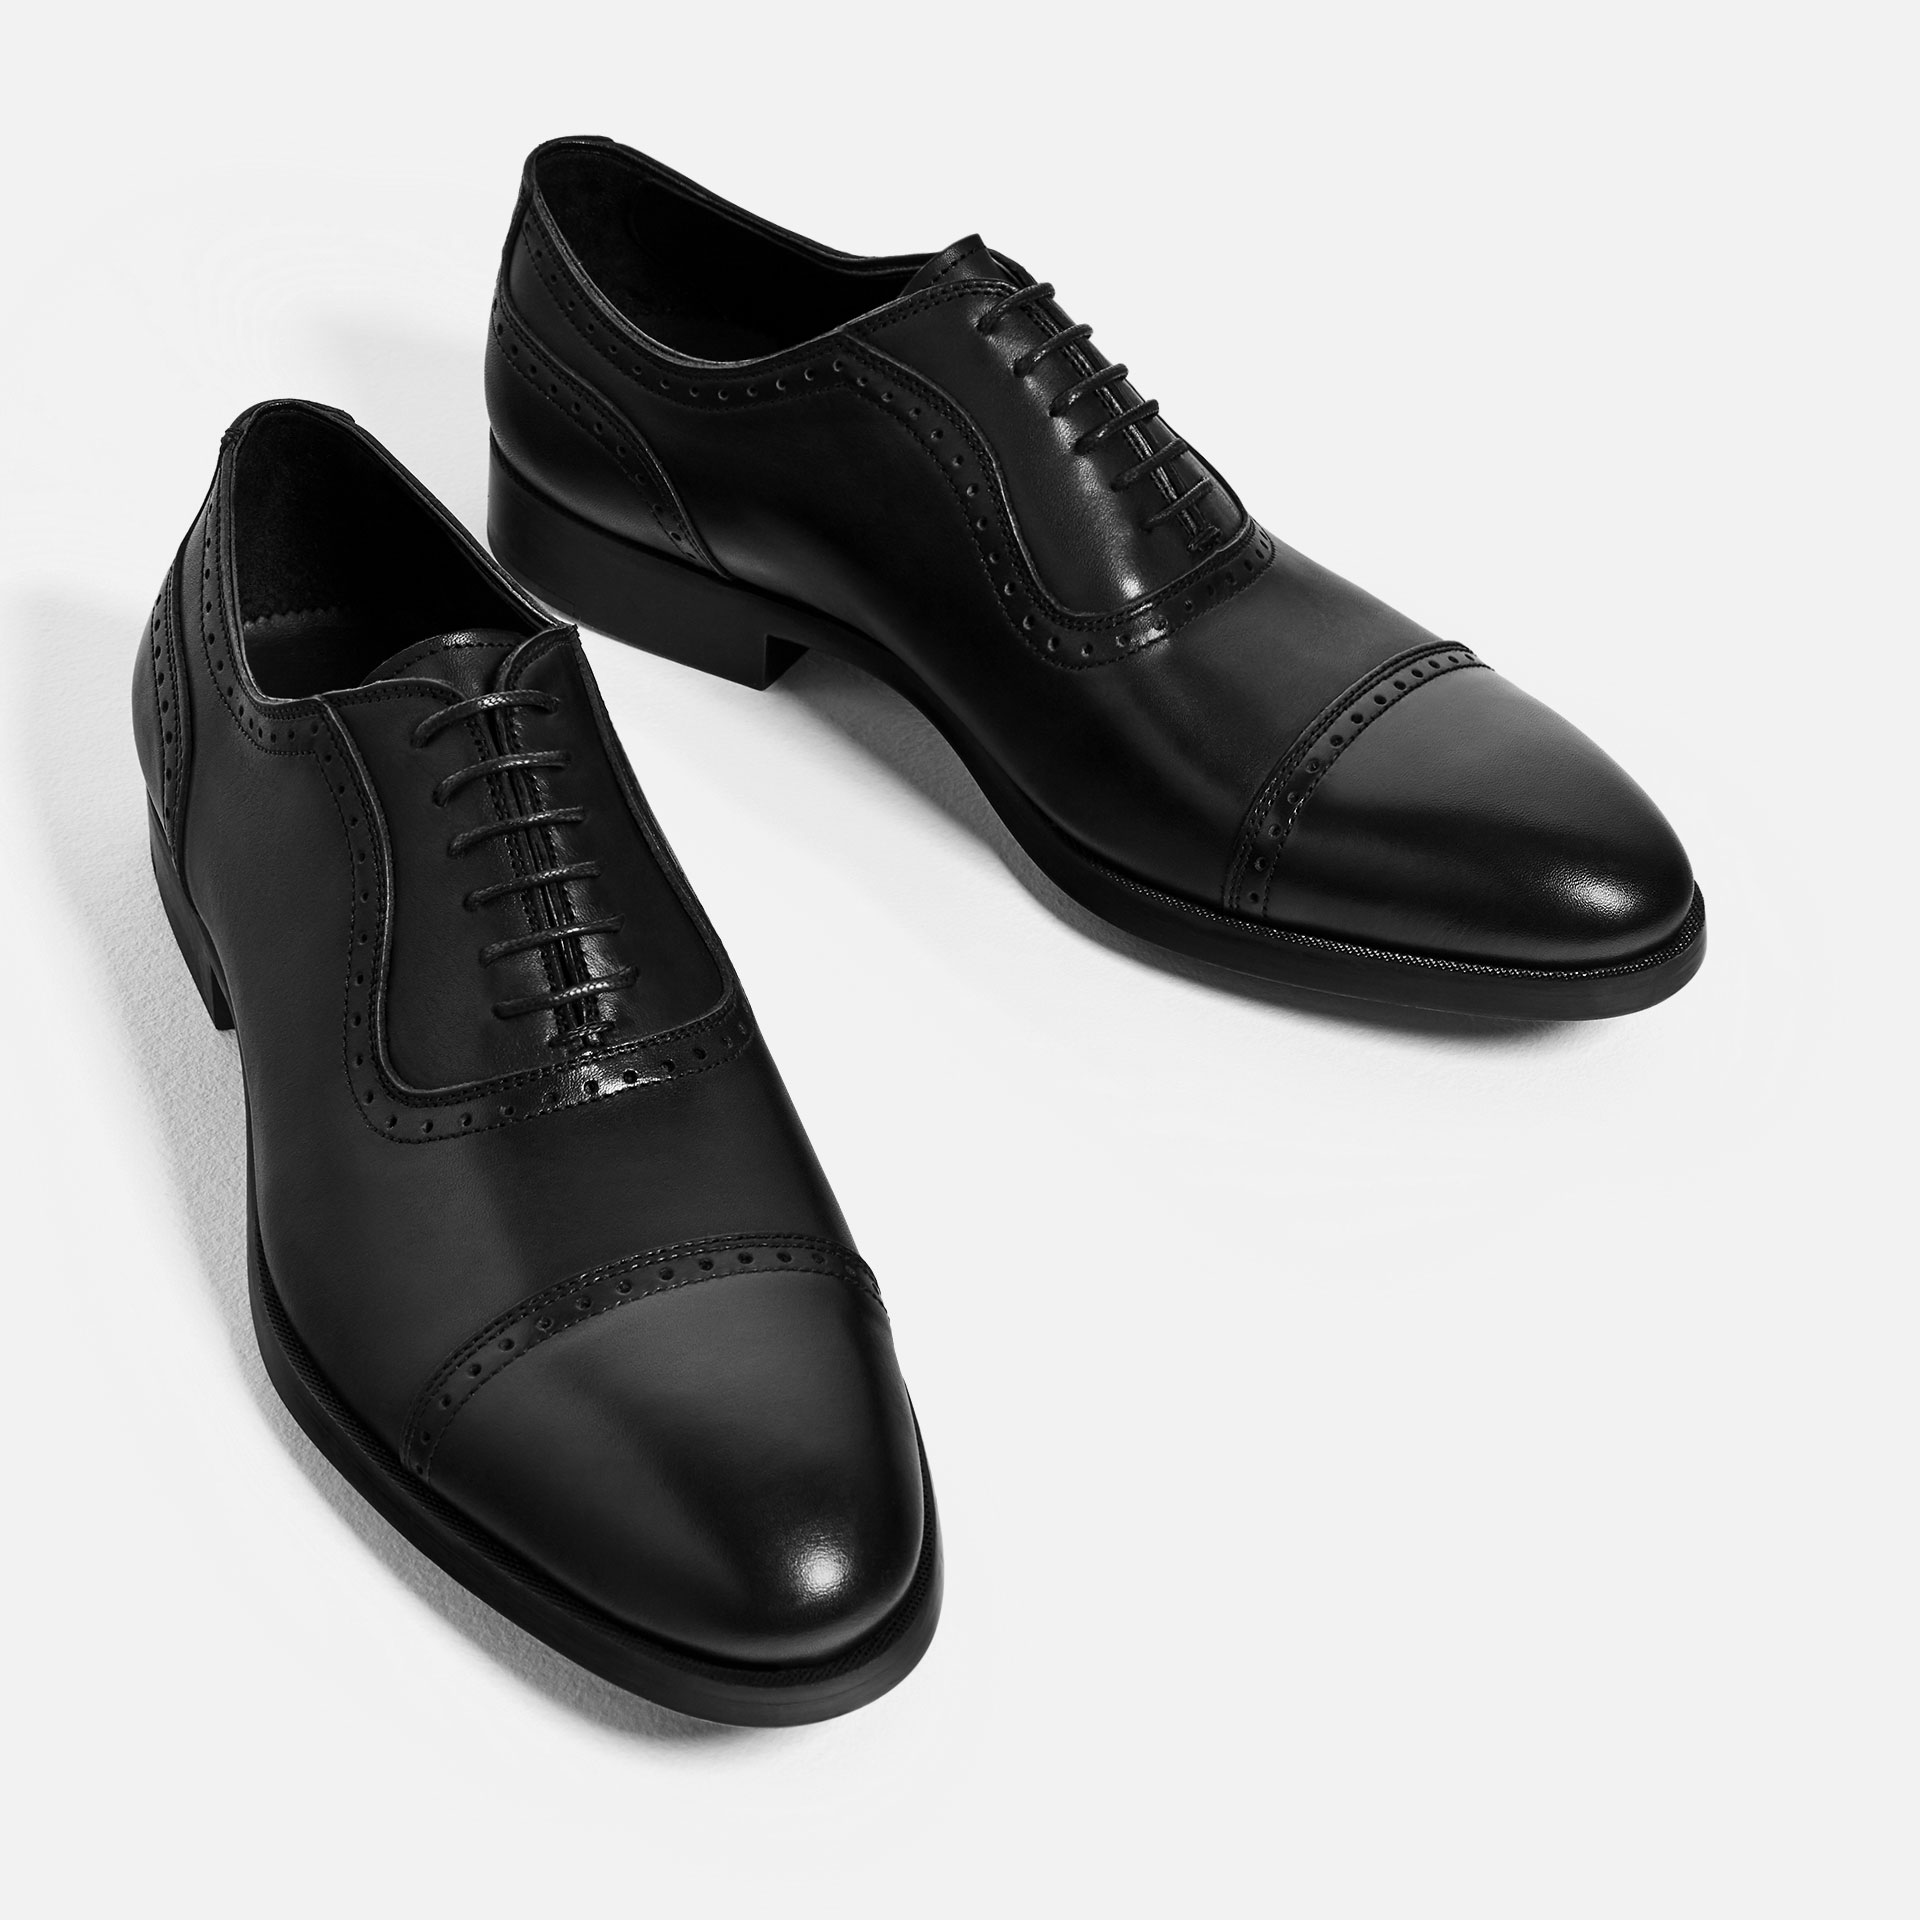 Fall Selects: Black Dress Shoes Under $300